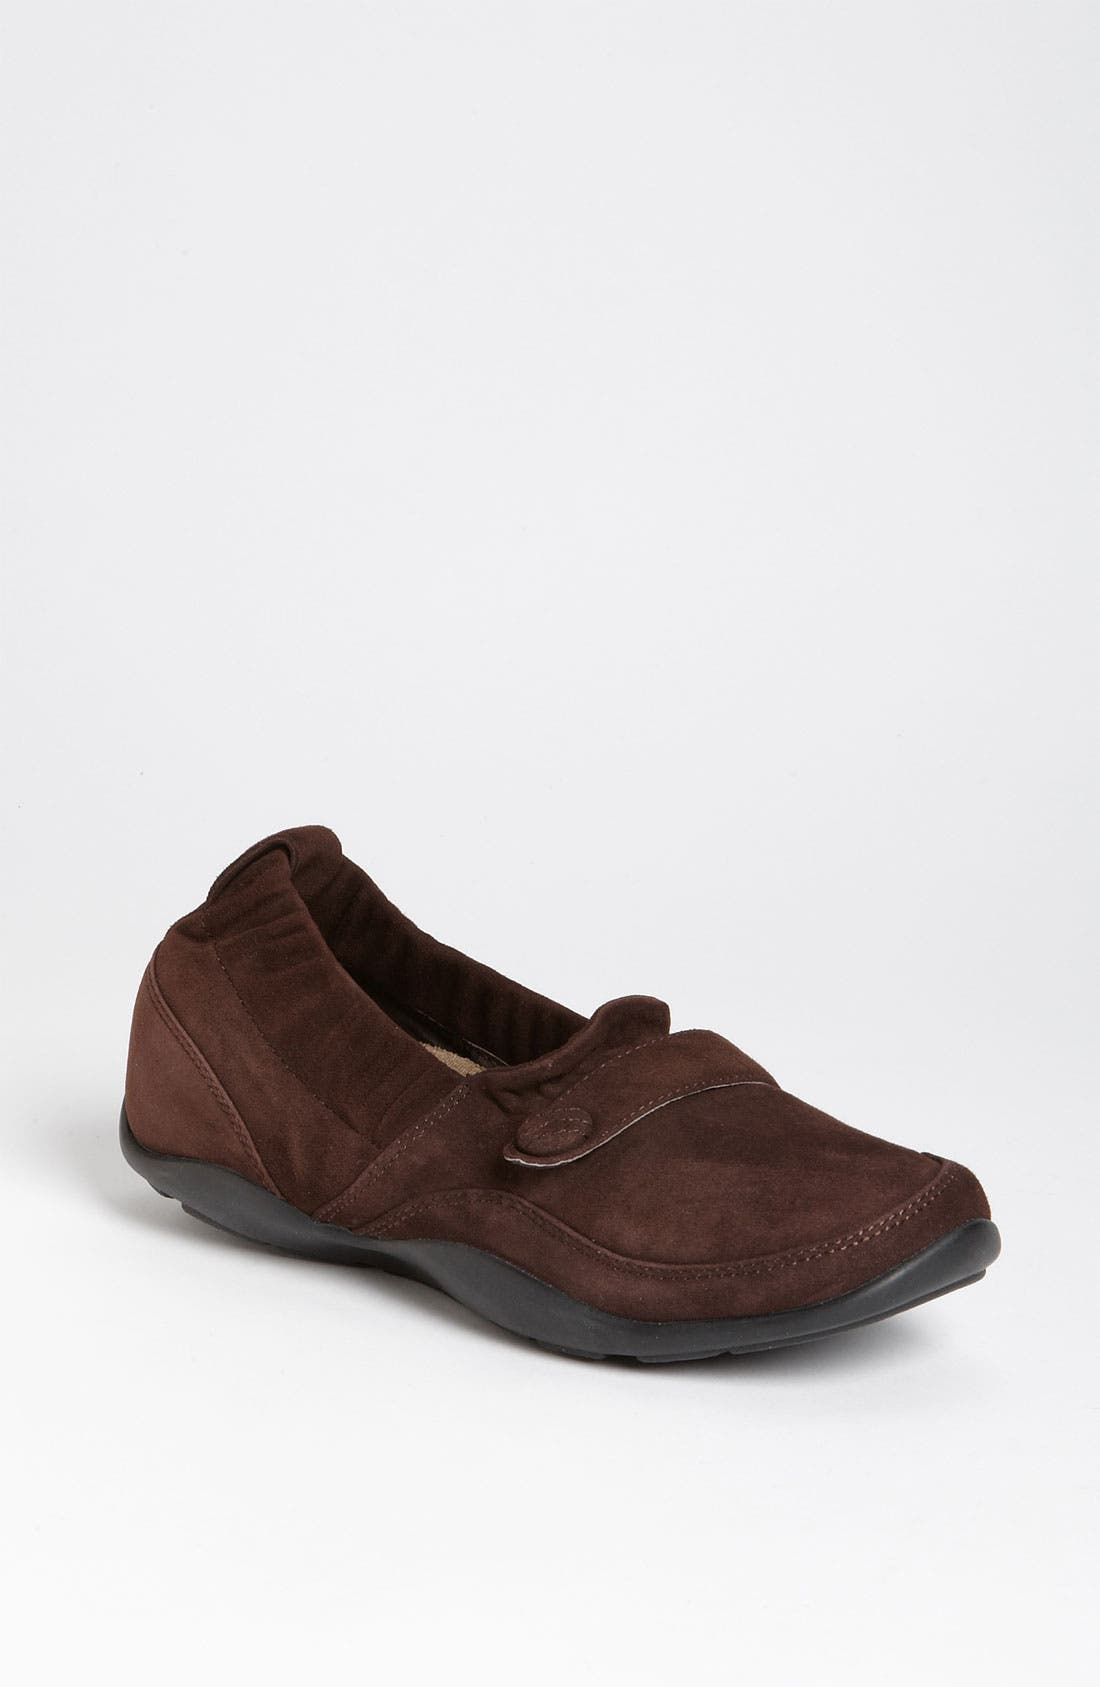 Alternate Image 1 Selected - Dansko 'Carol' Flat